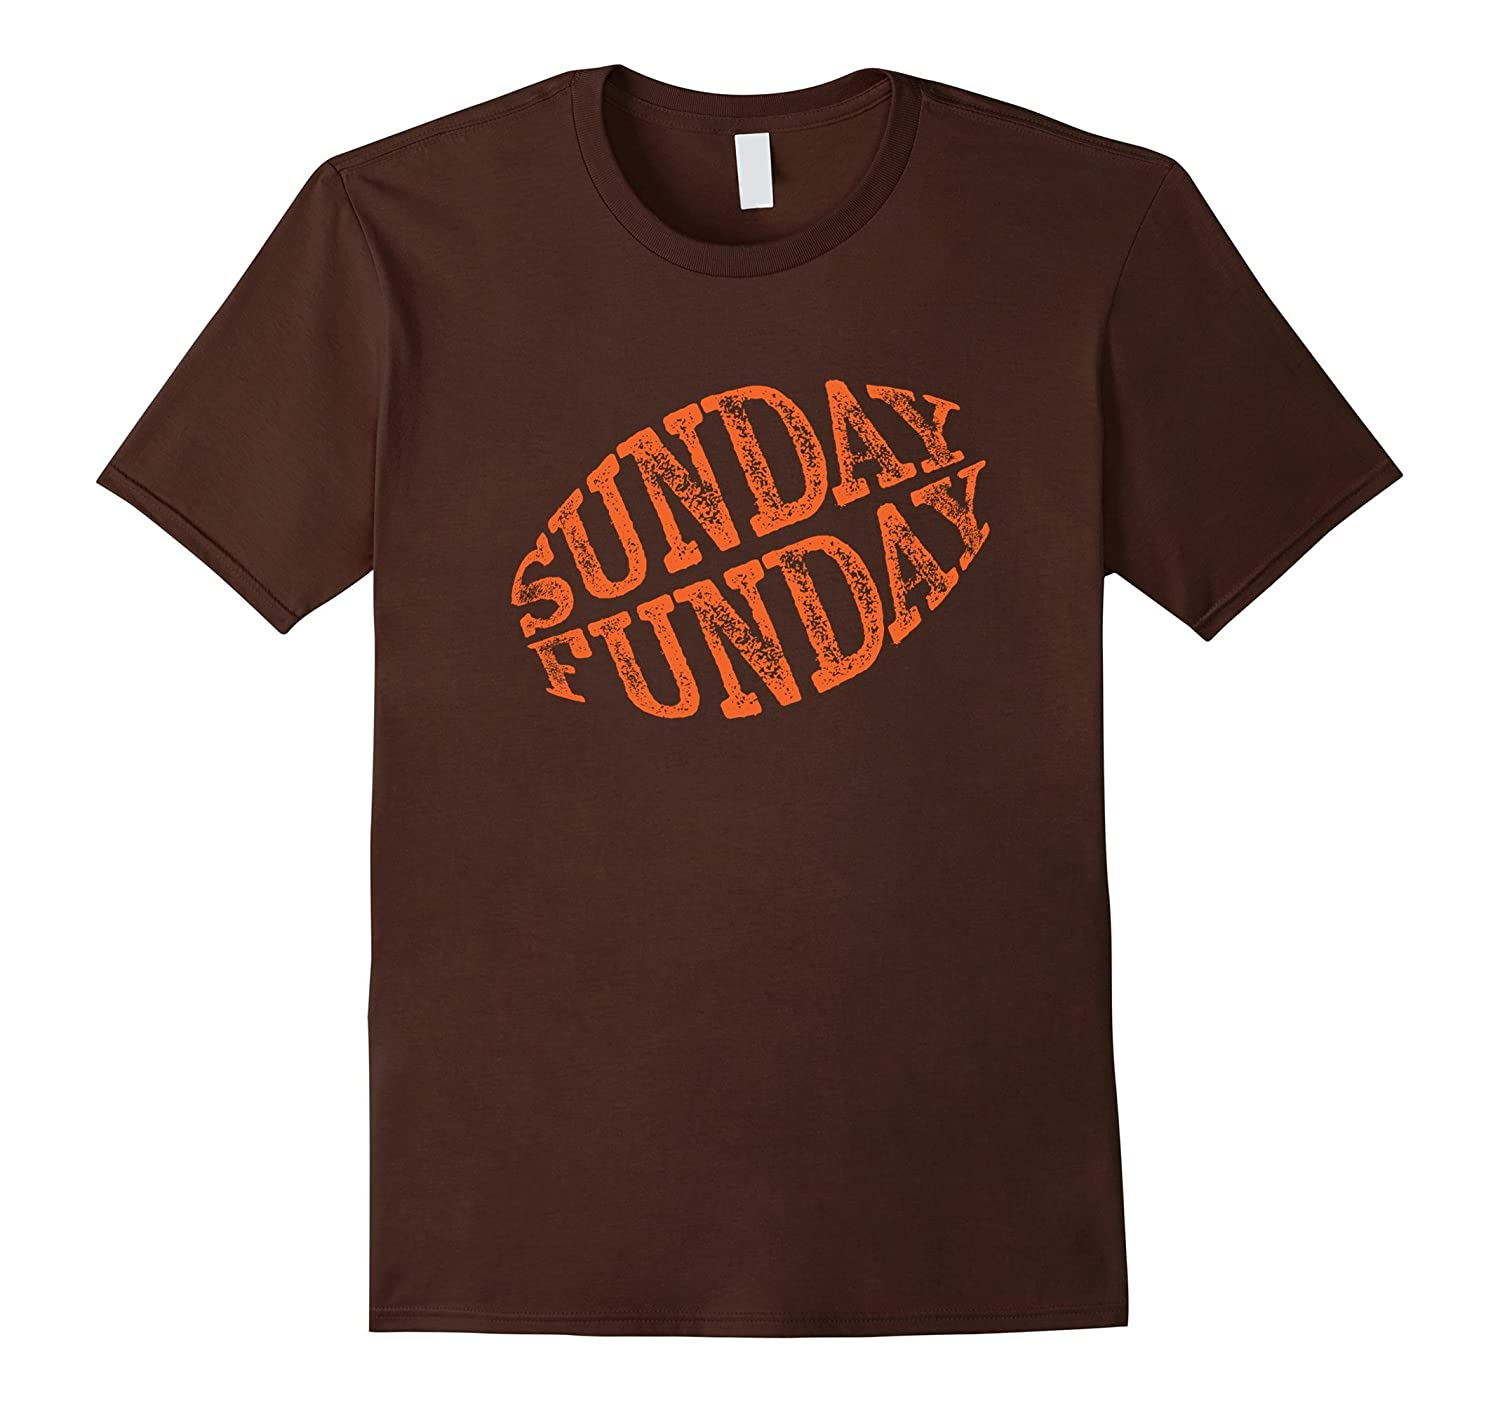 Sunday Funday Football T-Shirt - Cleveland Football Shirt-BN